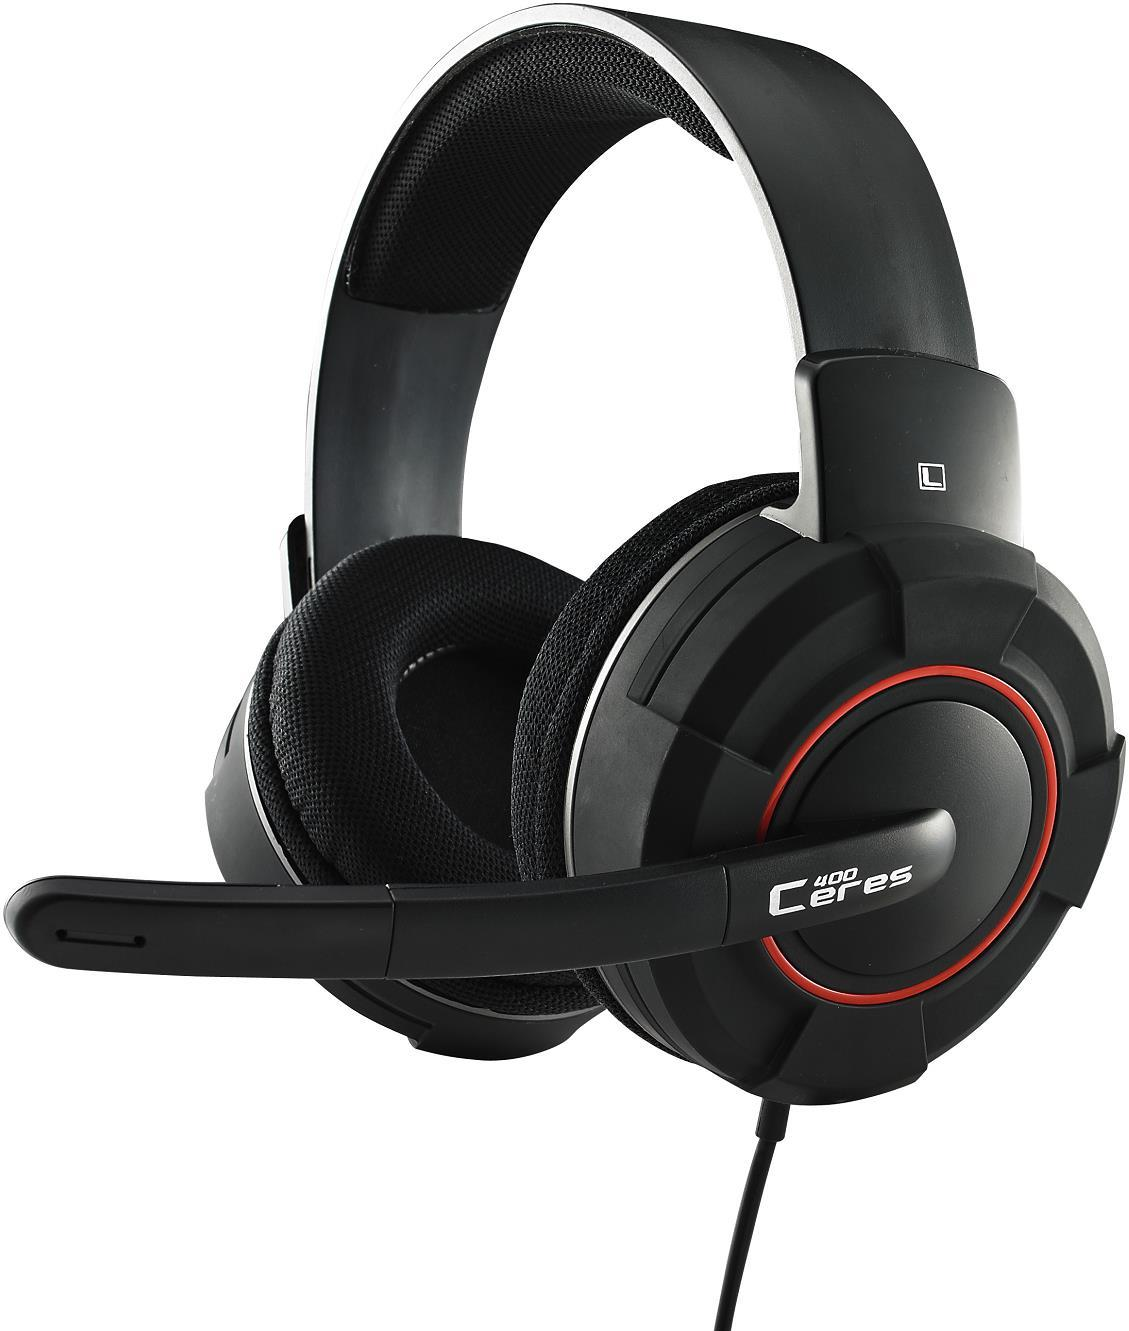 Cooler Master CM Storm Ceres 400 Gaming Headset